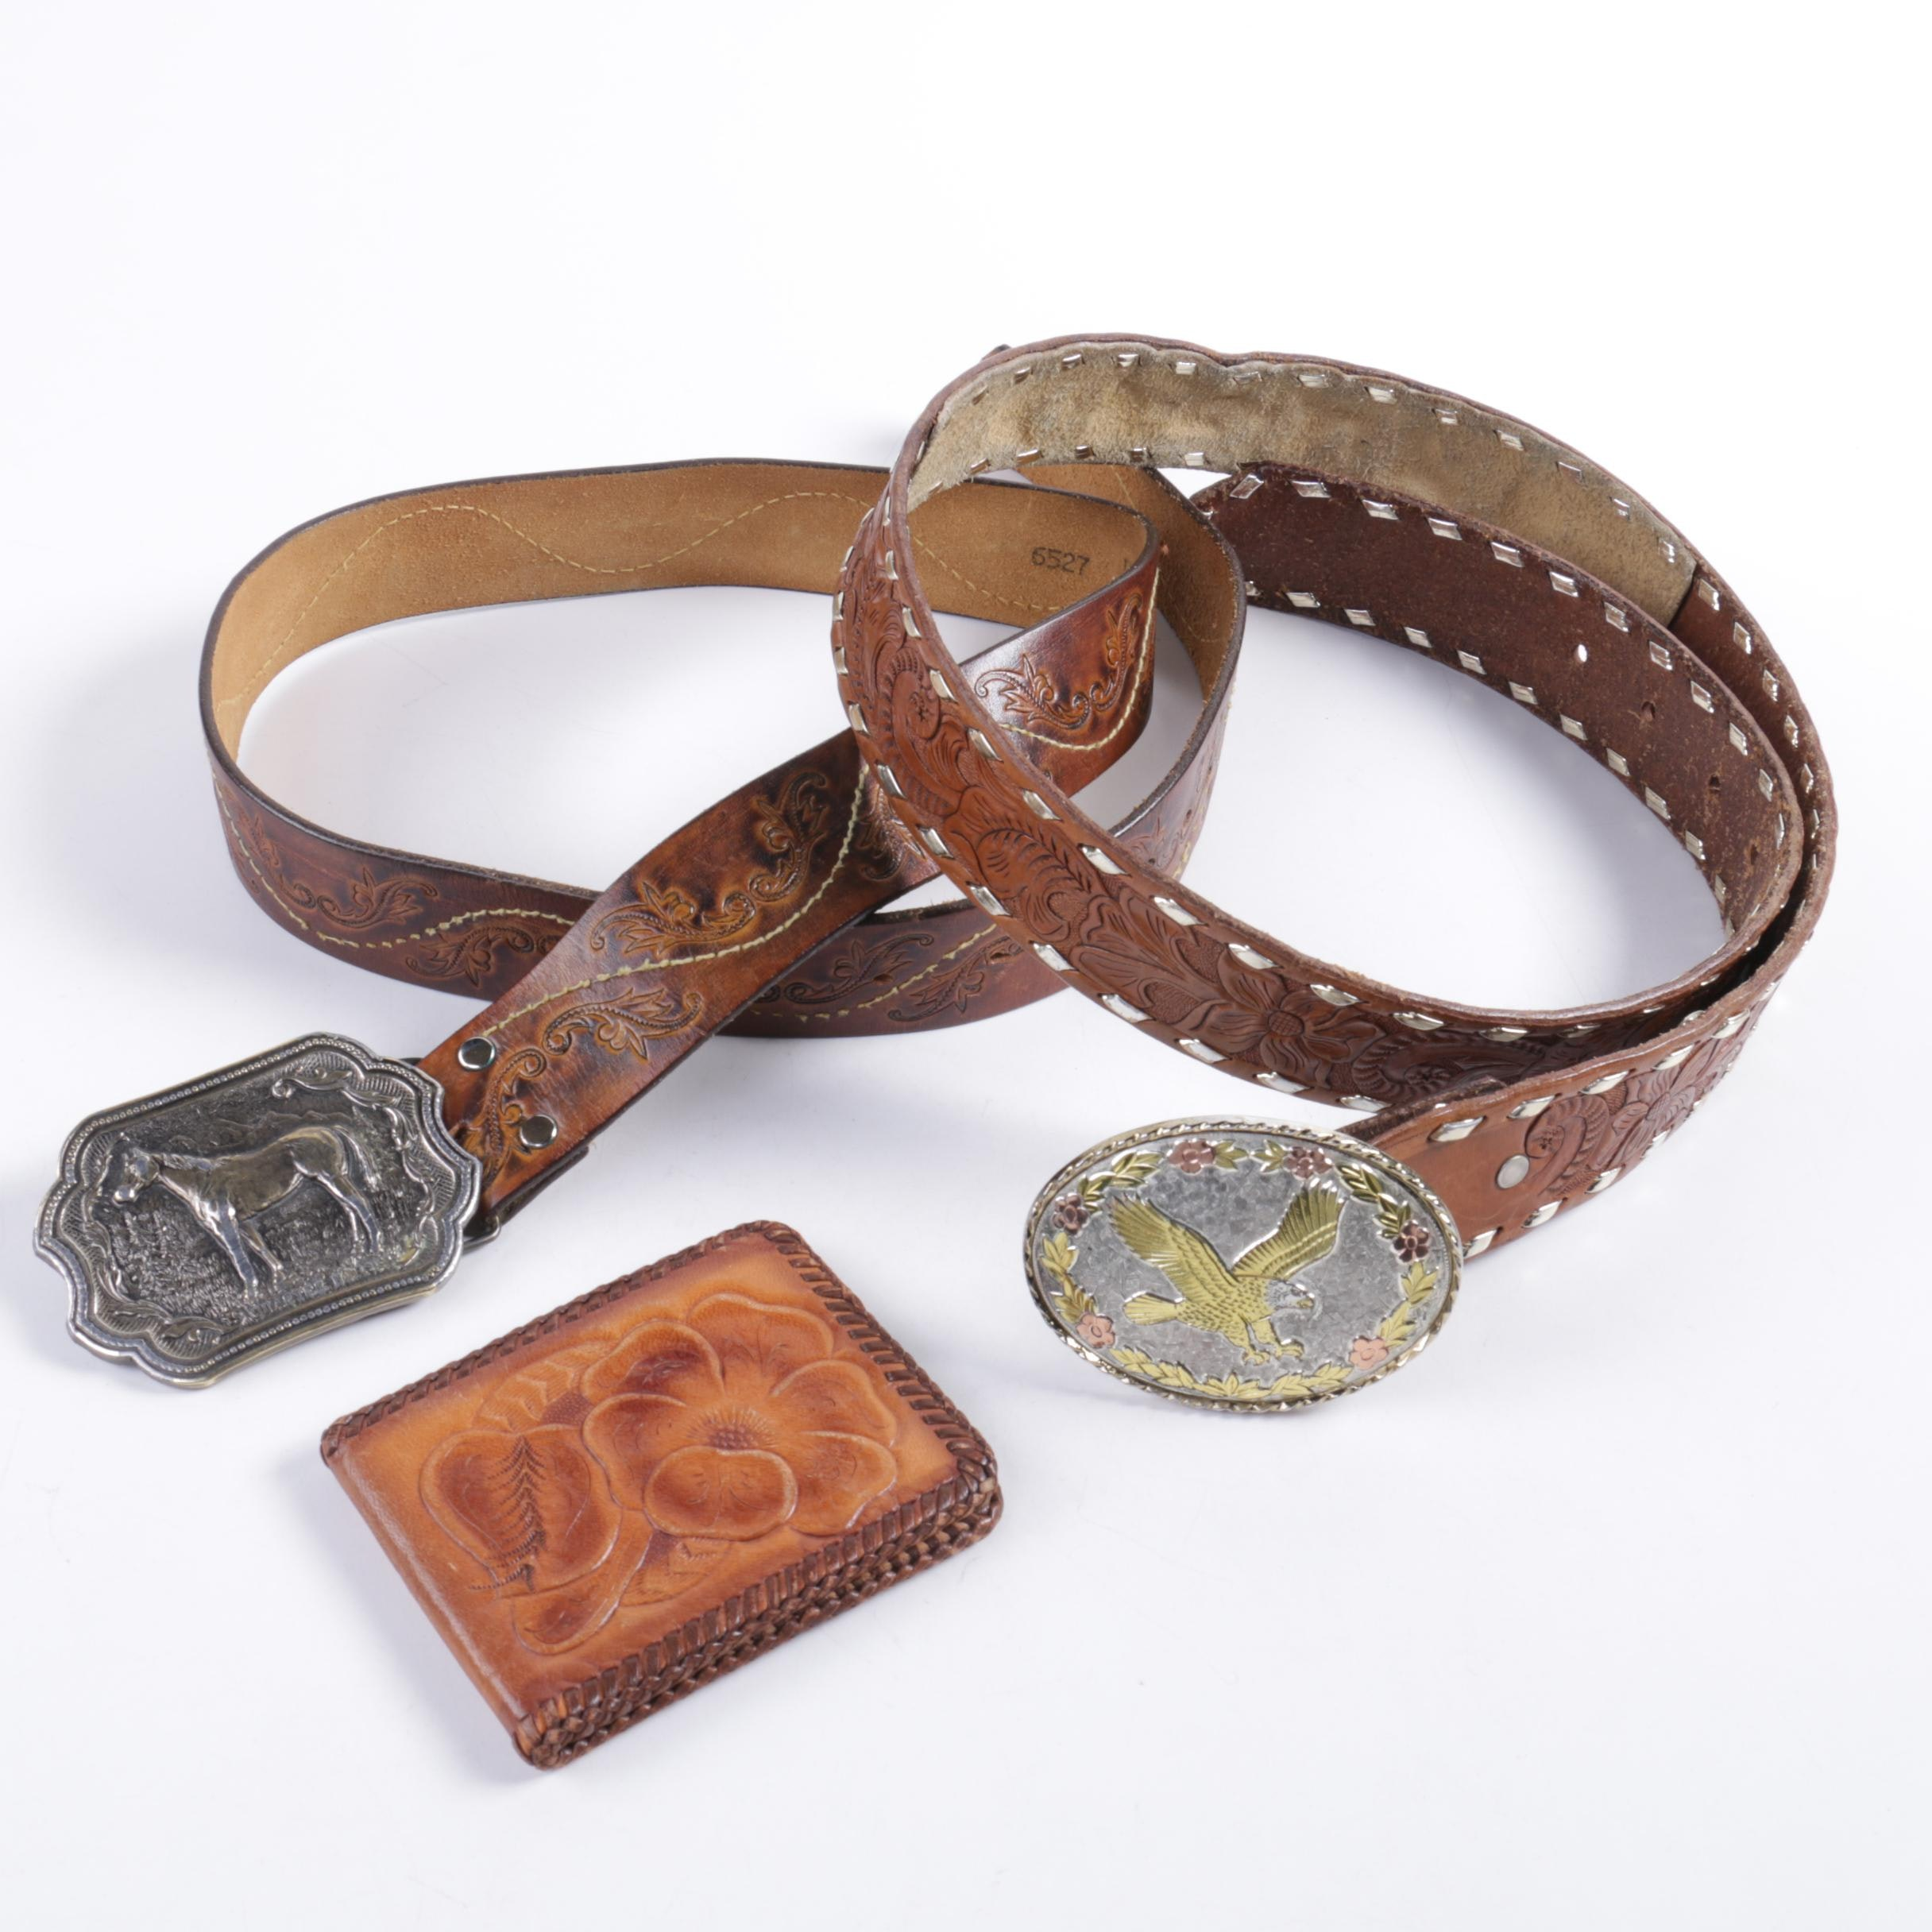 Vintage Tooled Leather Belts and Wallet